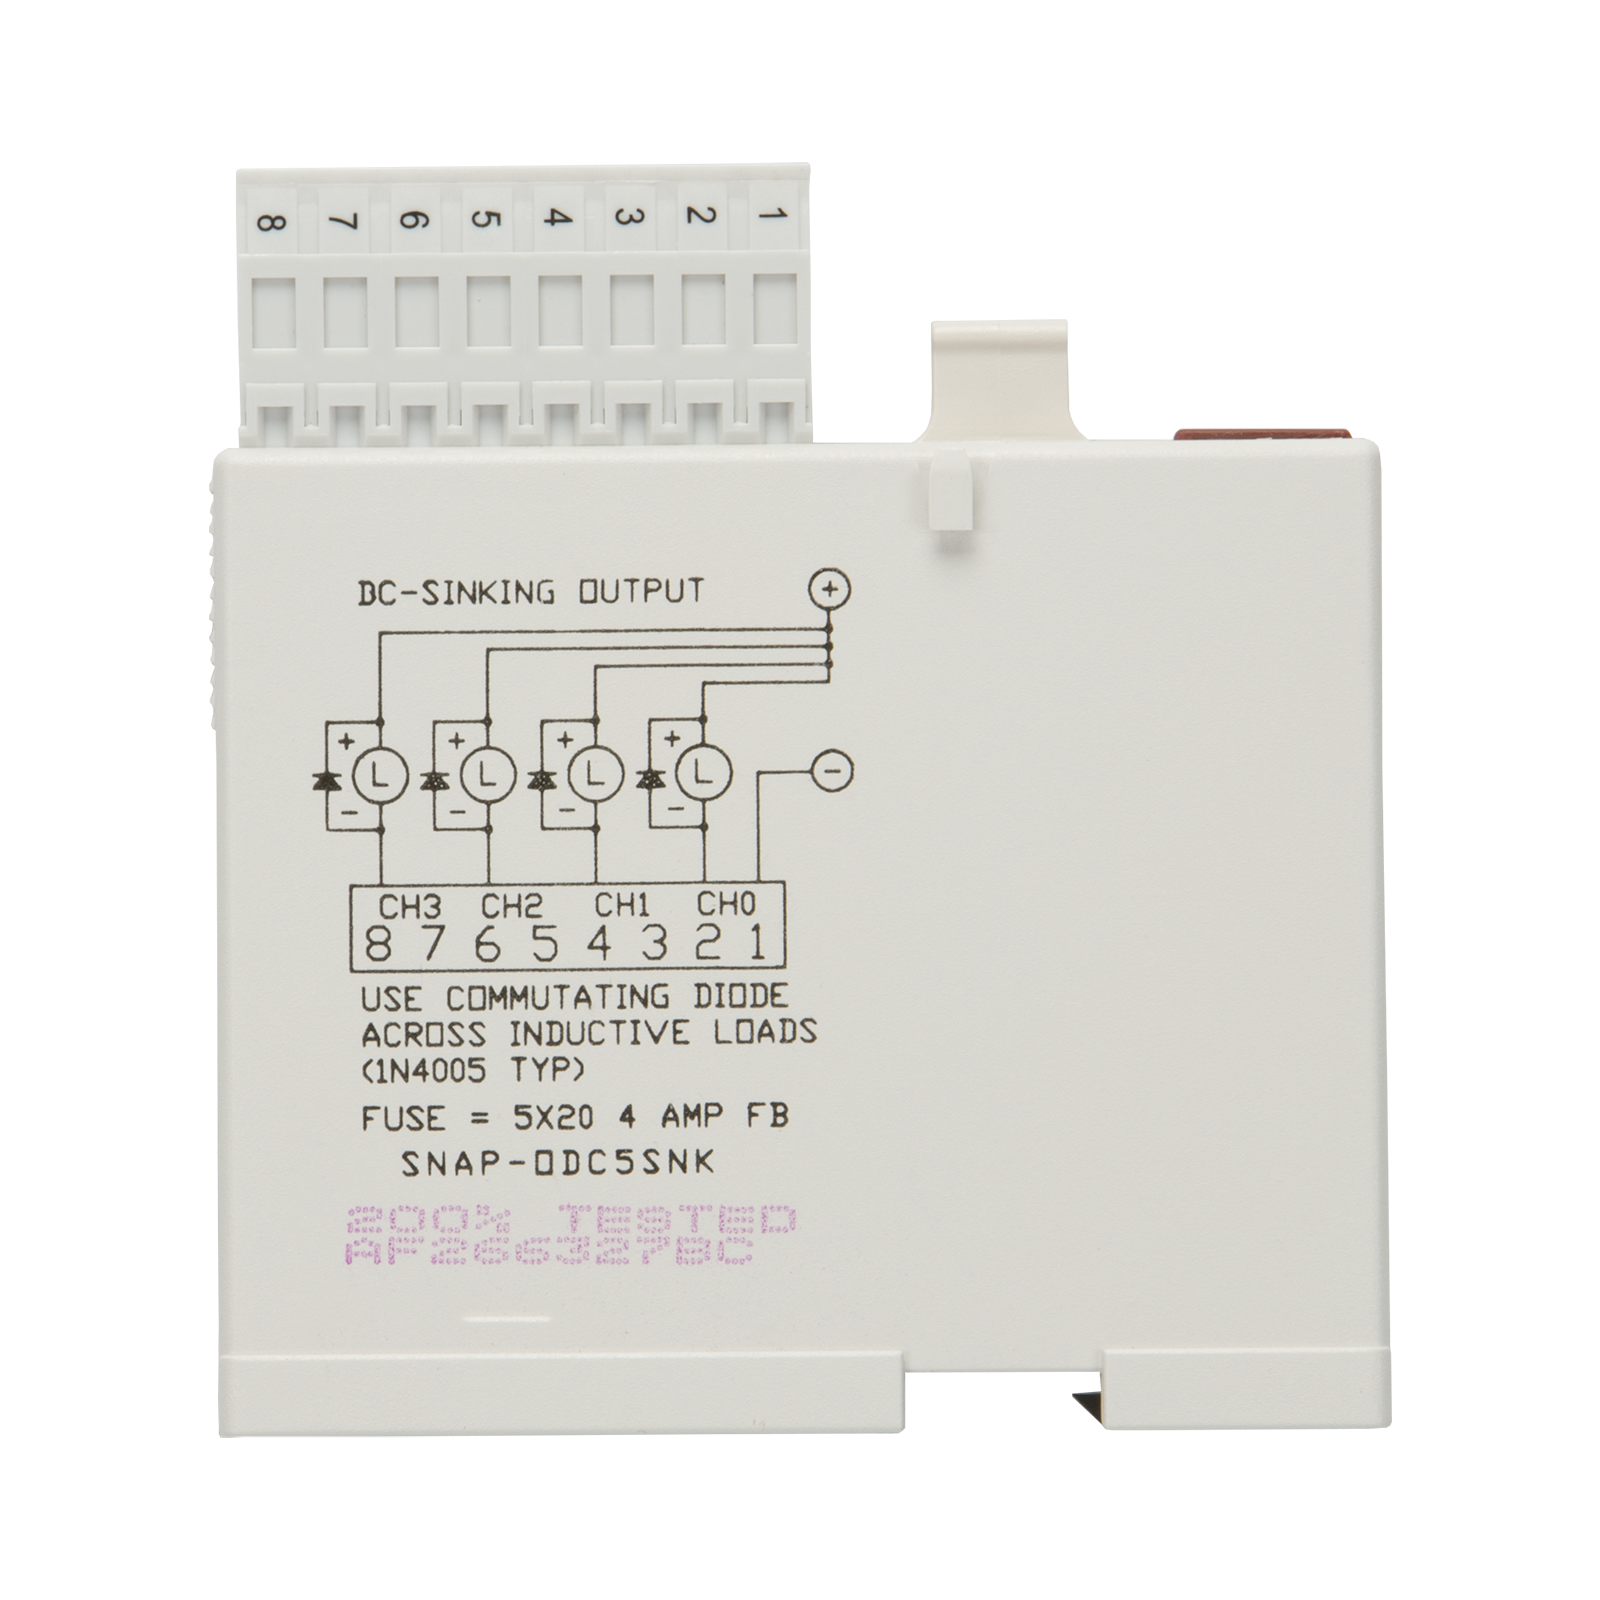 Opto22 Snap Odc5snk 4 Ch 5 60 Vdc Digital Discrete Output Download Resistor Calculator For Leds Serial And Parallel 2 Previous